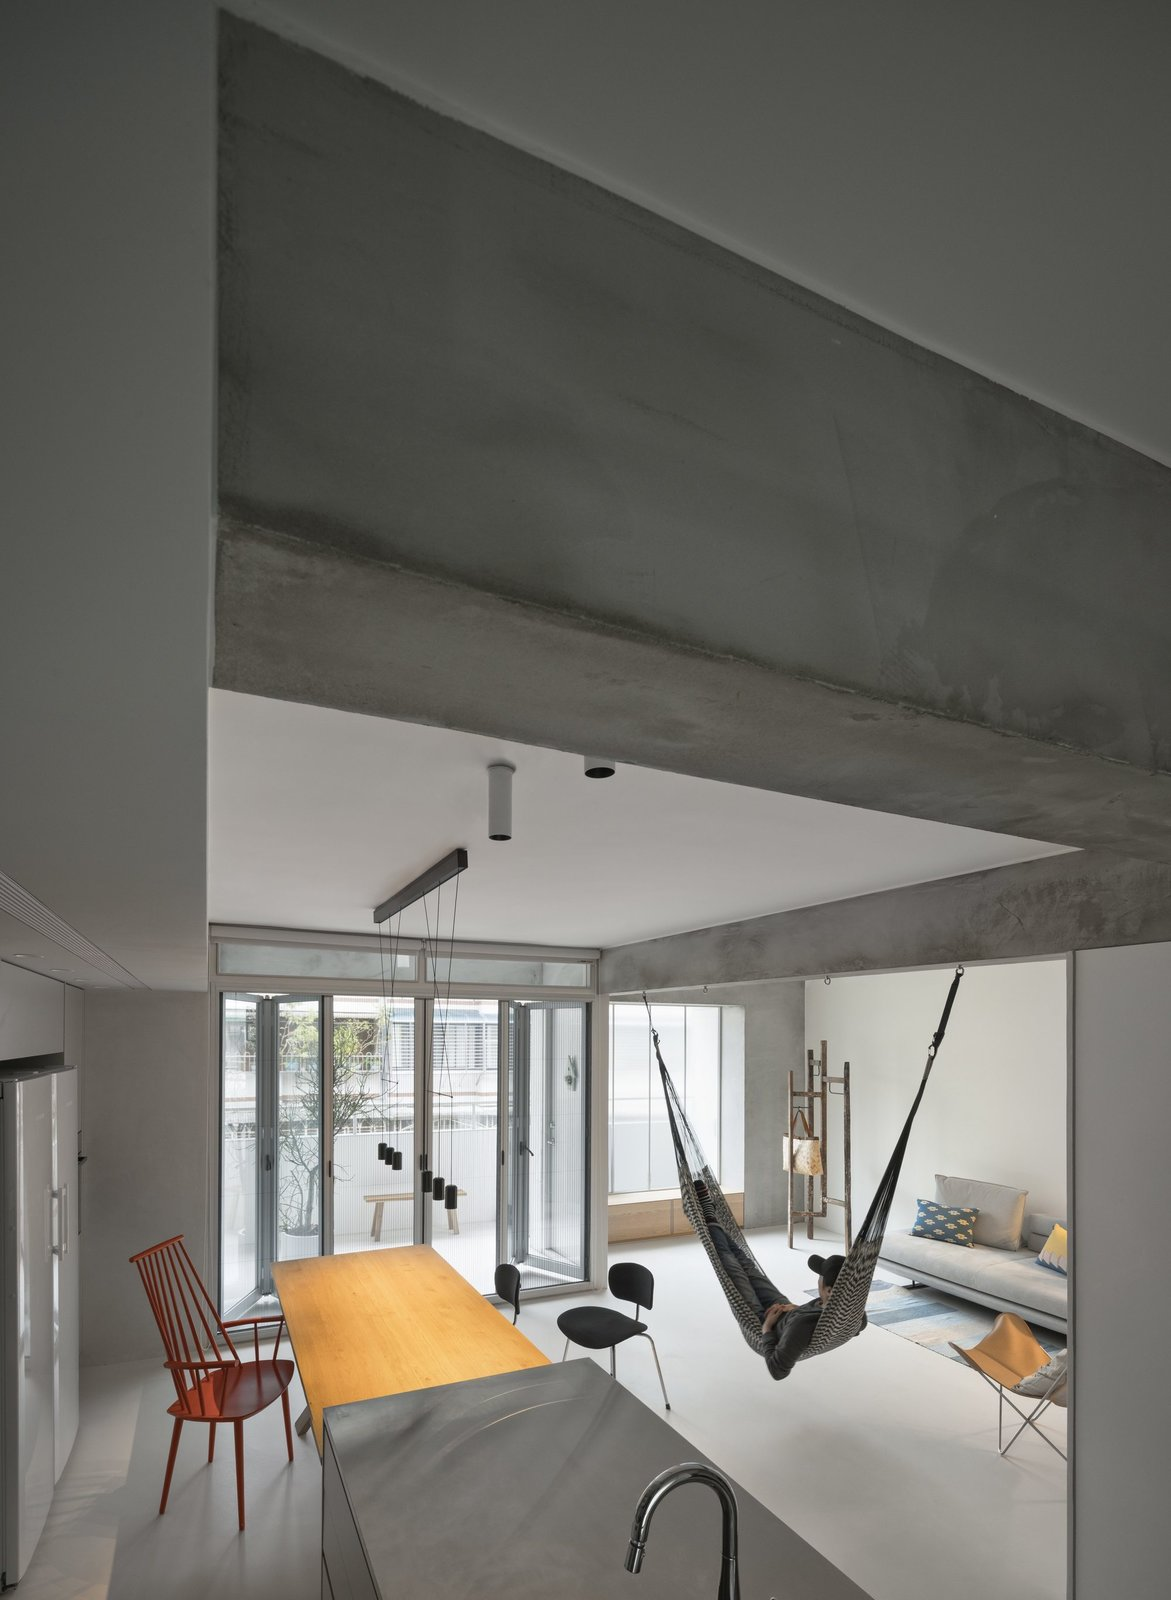 Chair, Vessel Sink, Ceramic Tile Floor, Concrete Counter, Drop In Tub, Recessed Lighting, and Living Room  Backlight Apartment